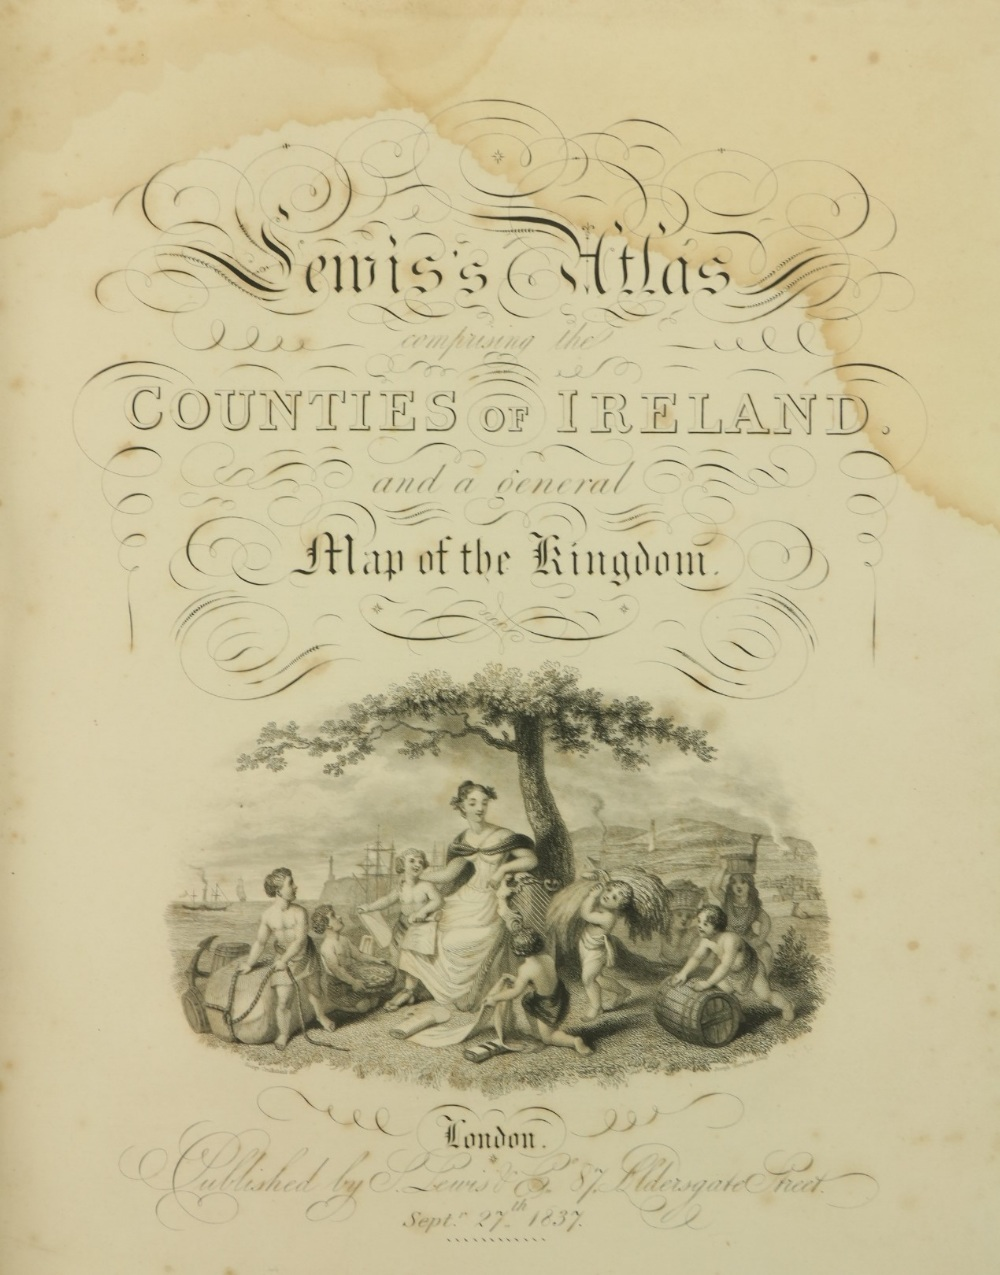 Lewis (Samuel)Atlas Comprising the Counties of Ireland, and A General Map of the Kingdom, lg. 4to